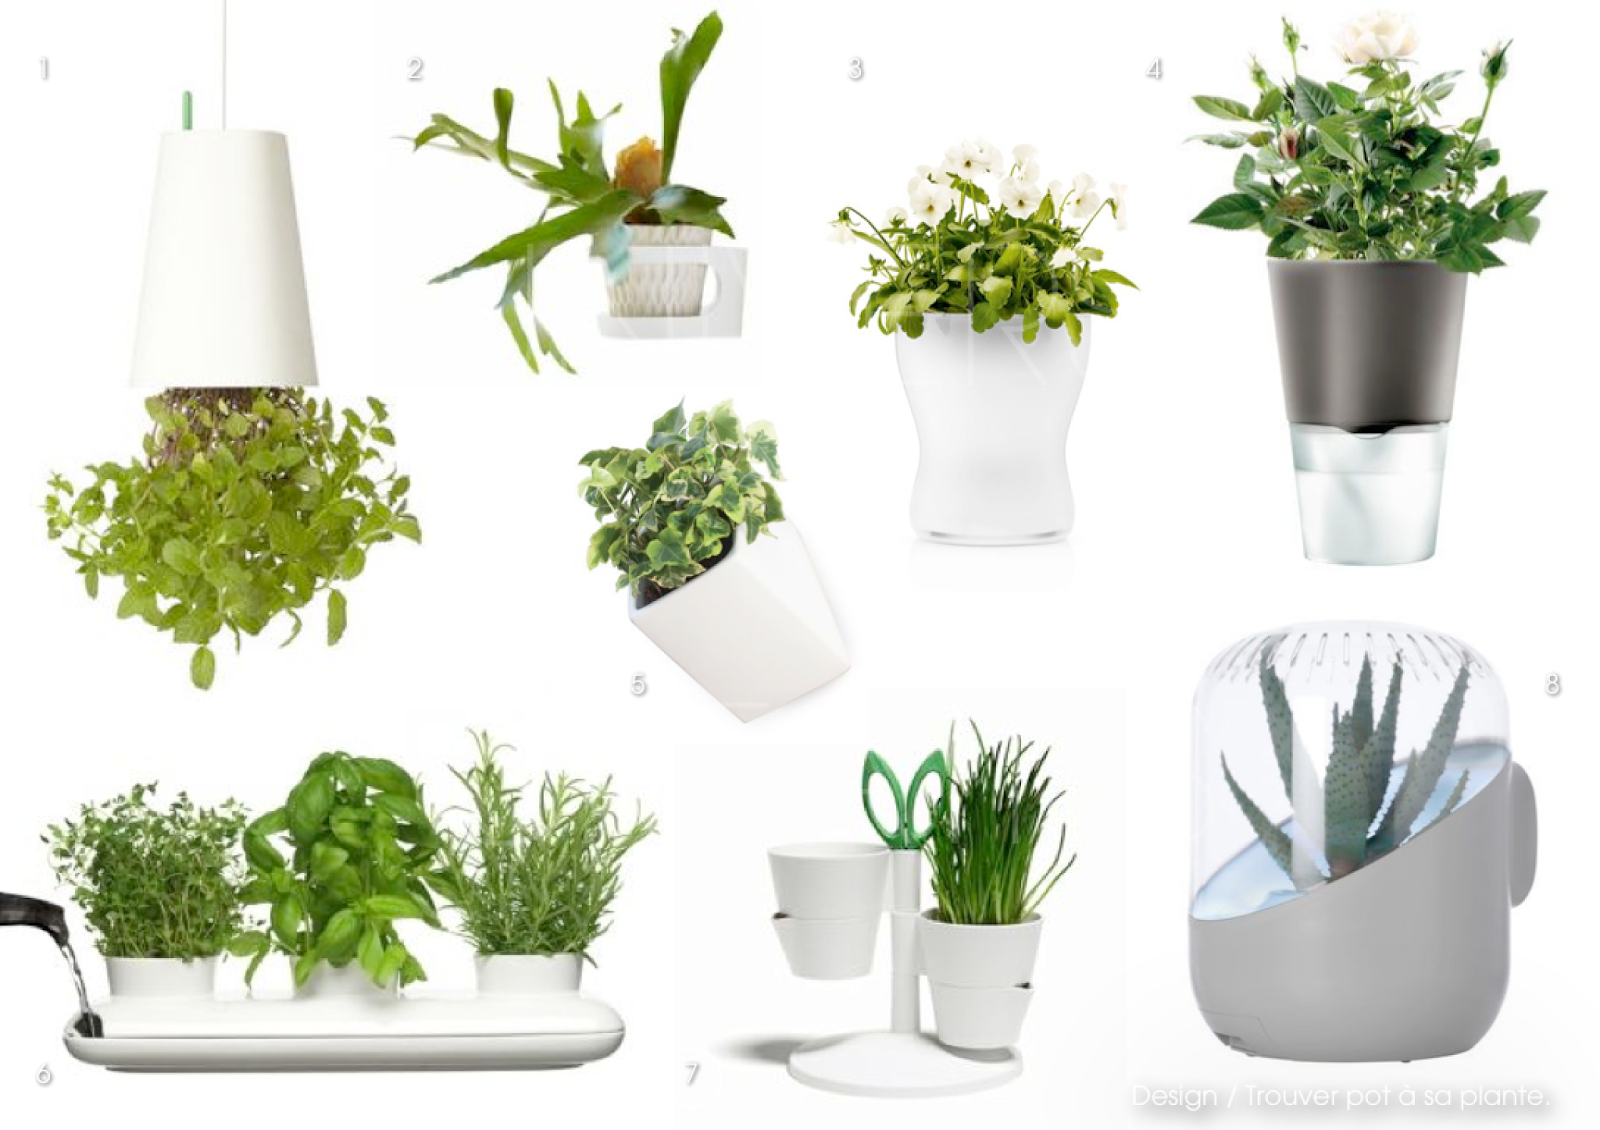 Univers creatifs design trouver pot sa plante for Support de plantes d interieur